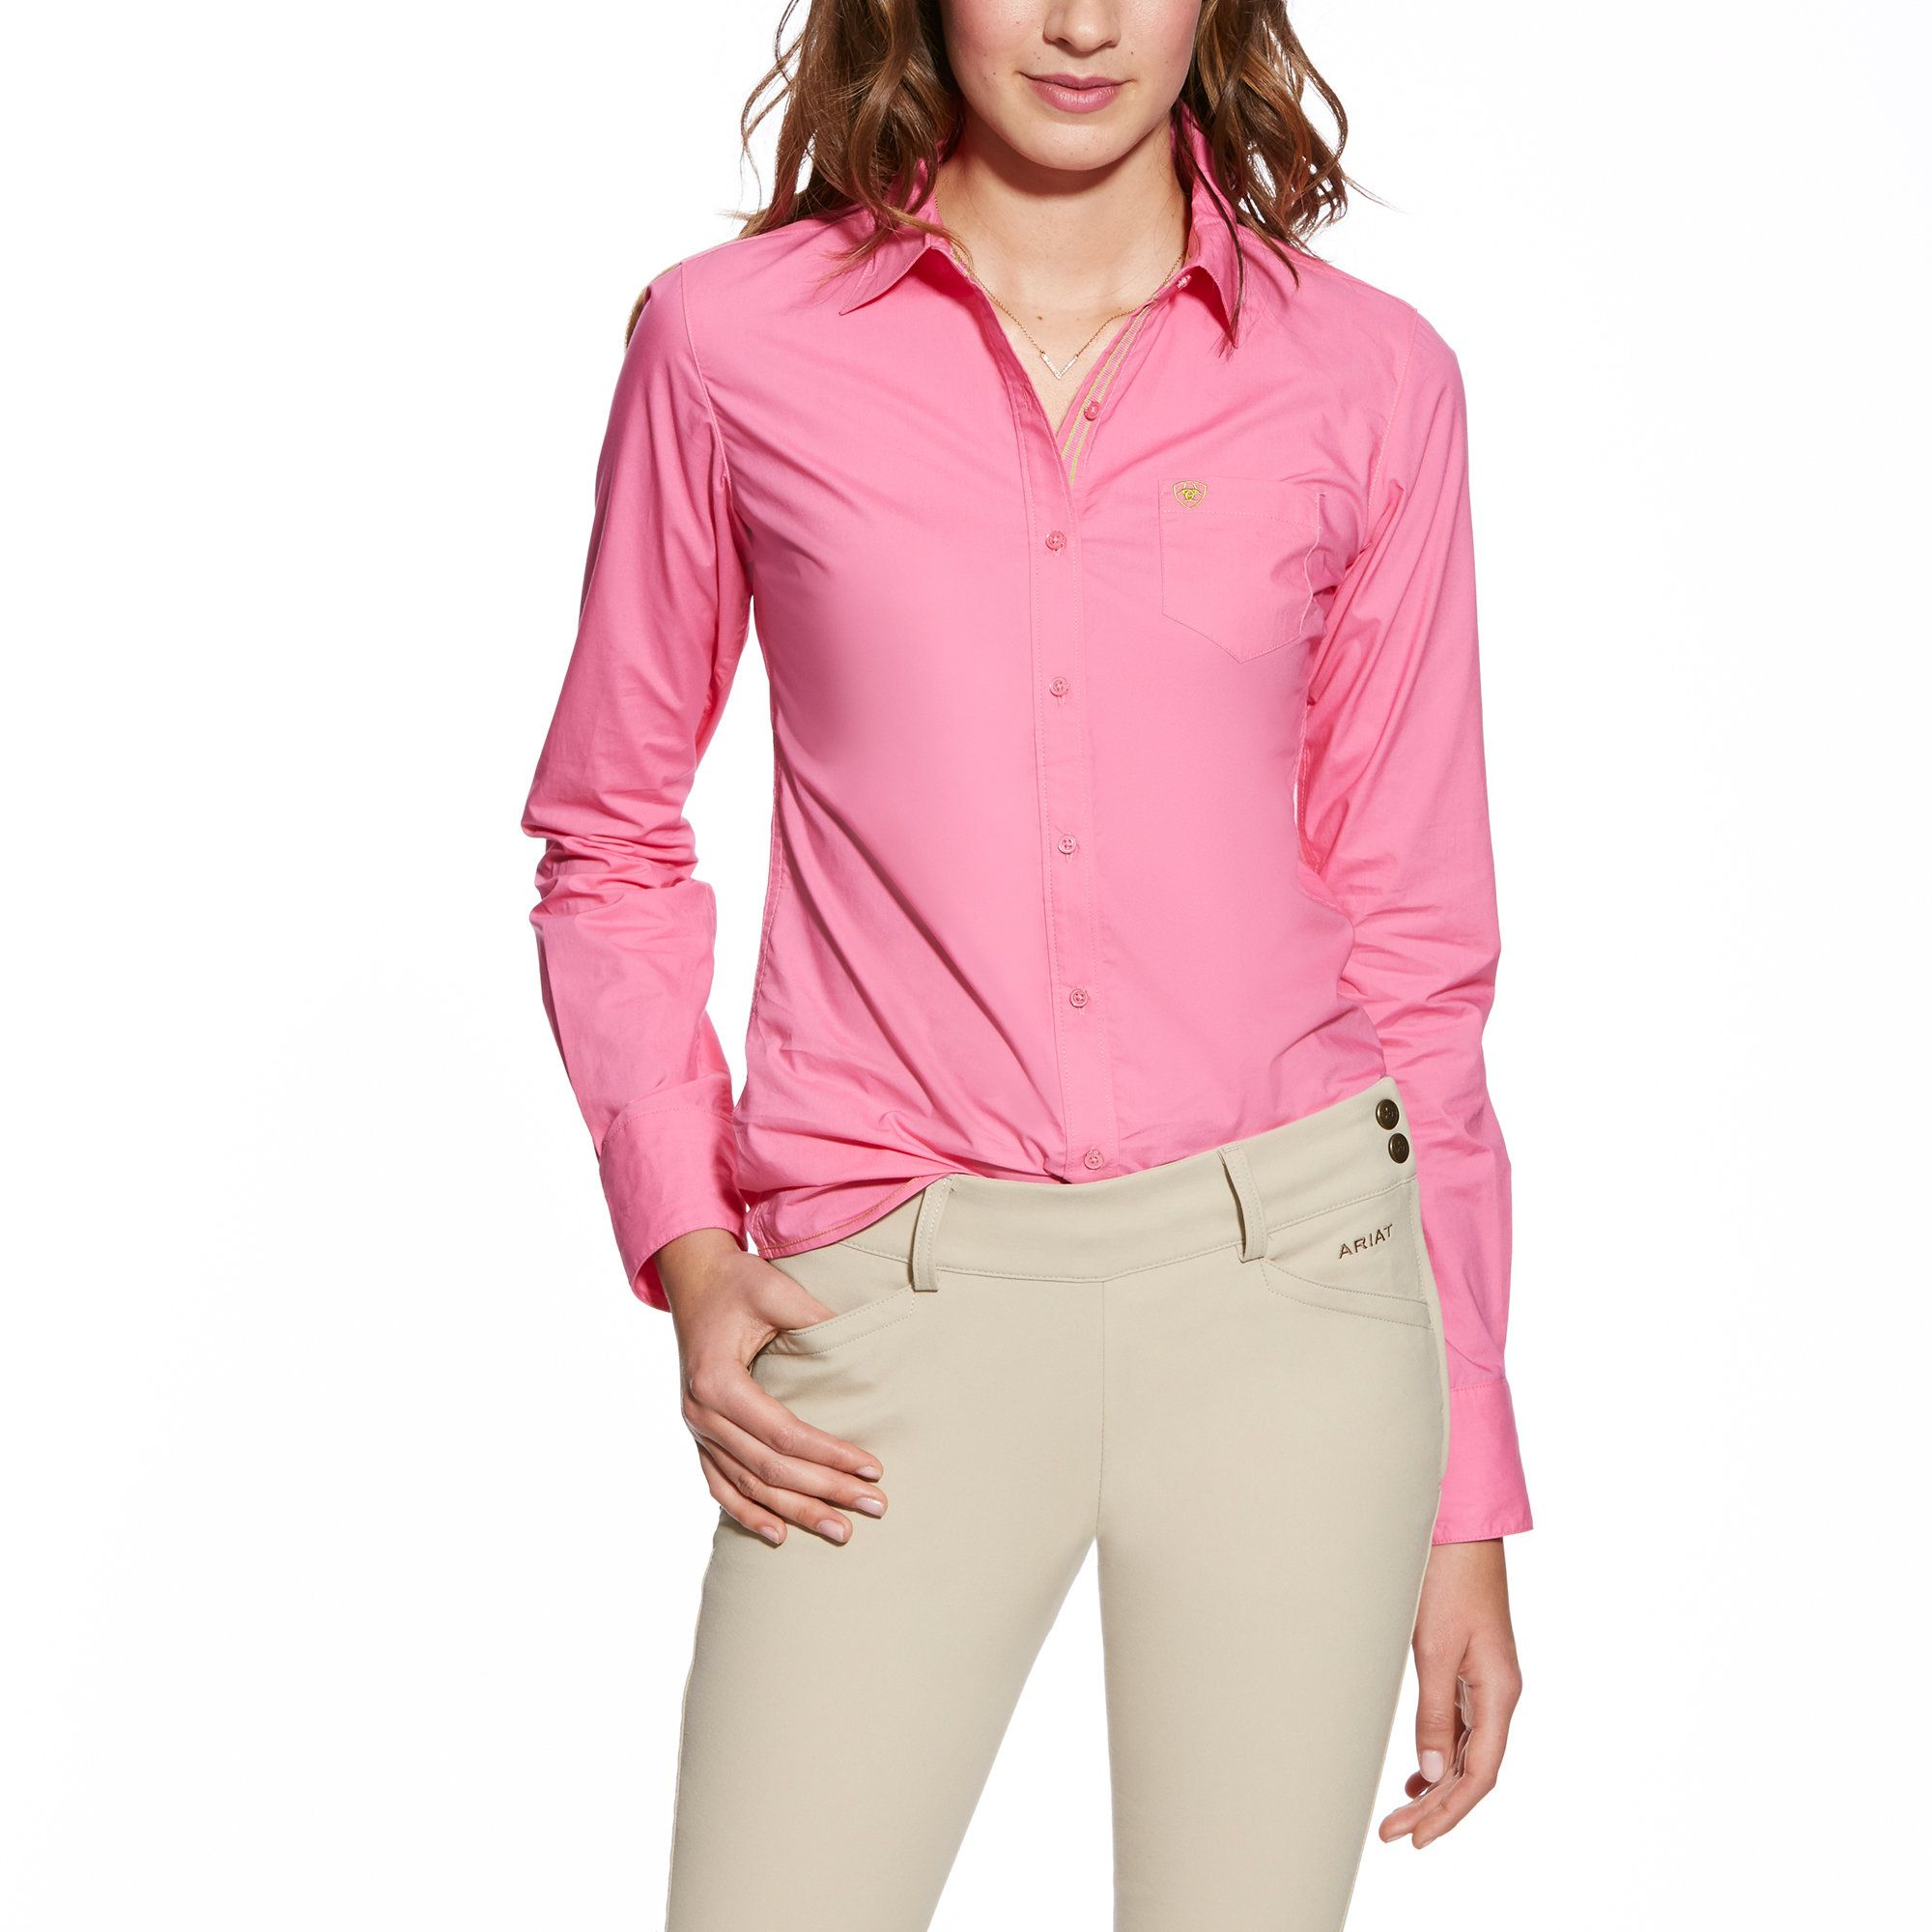 ARIAT Womens Kirby Fitted Button-Down Shirt